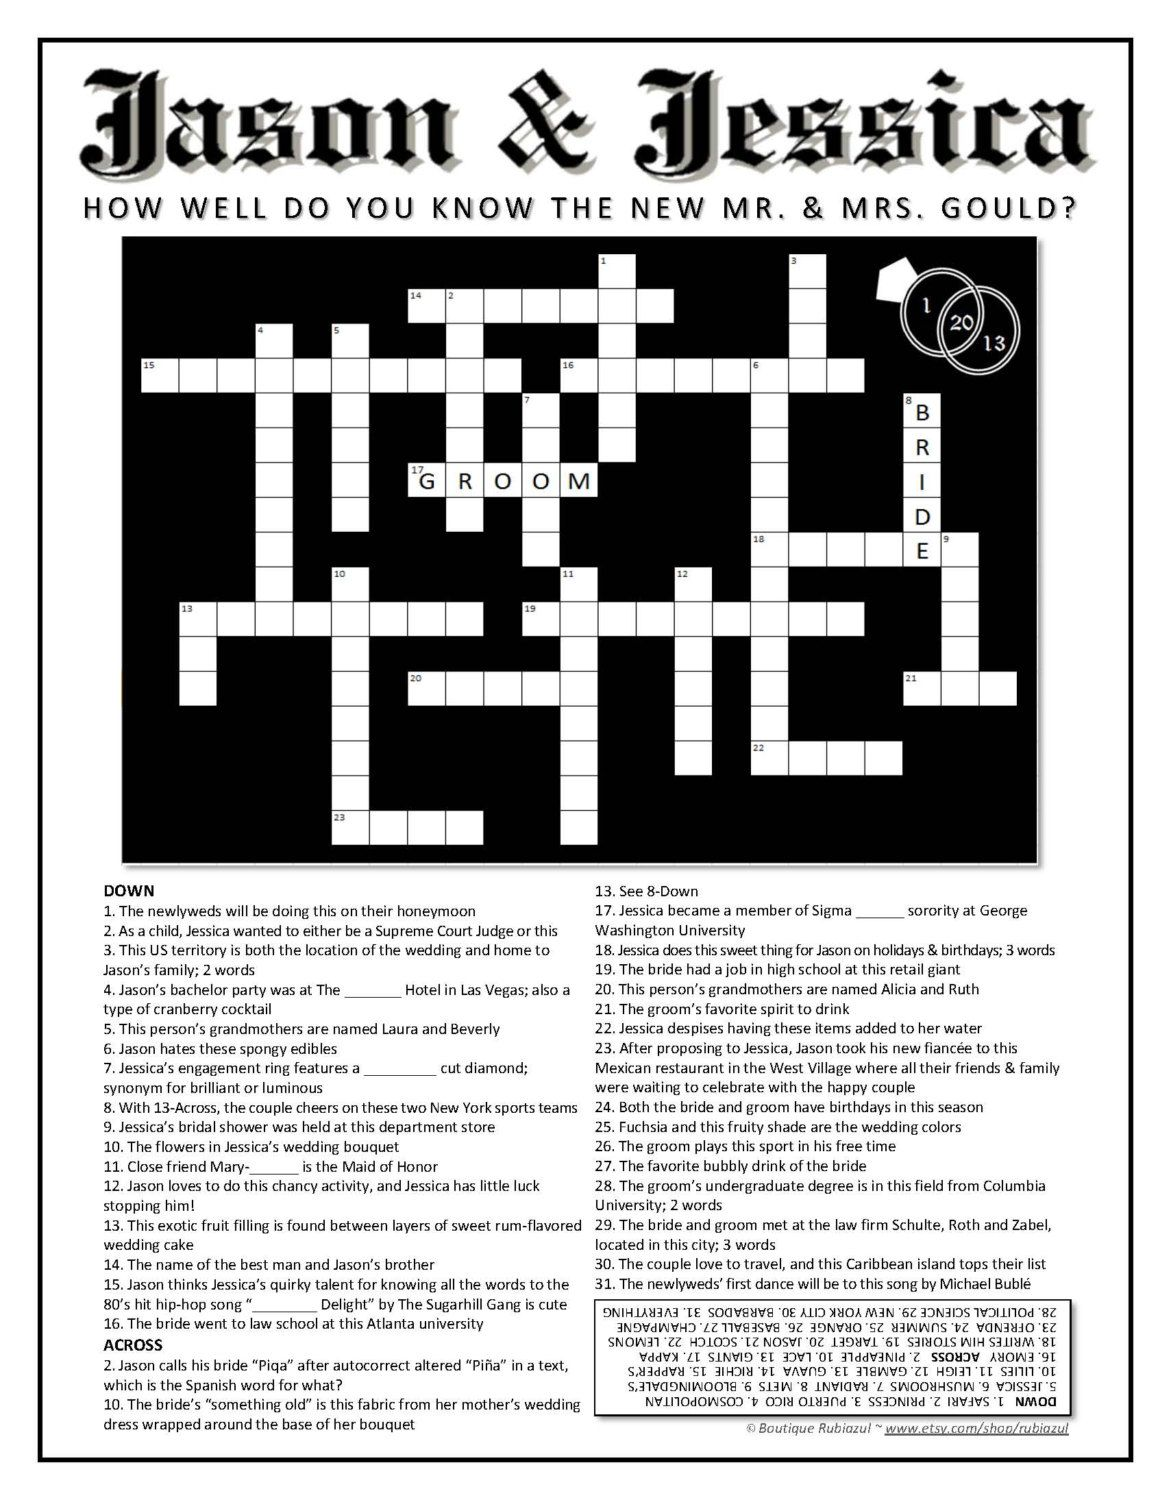 Dating crossword